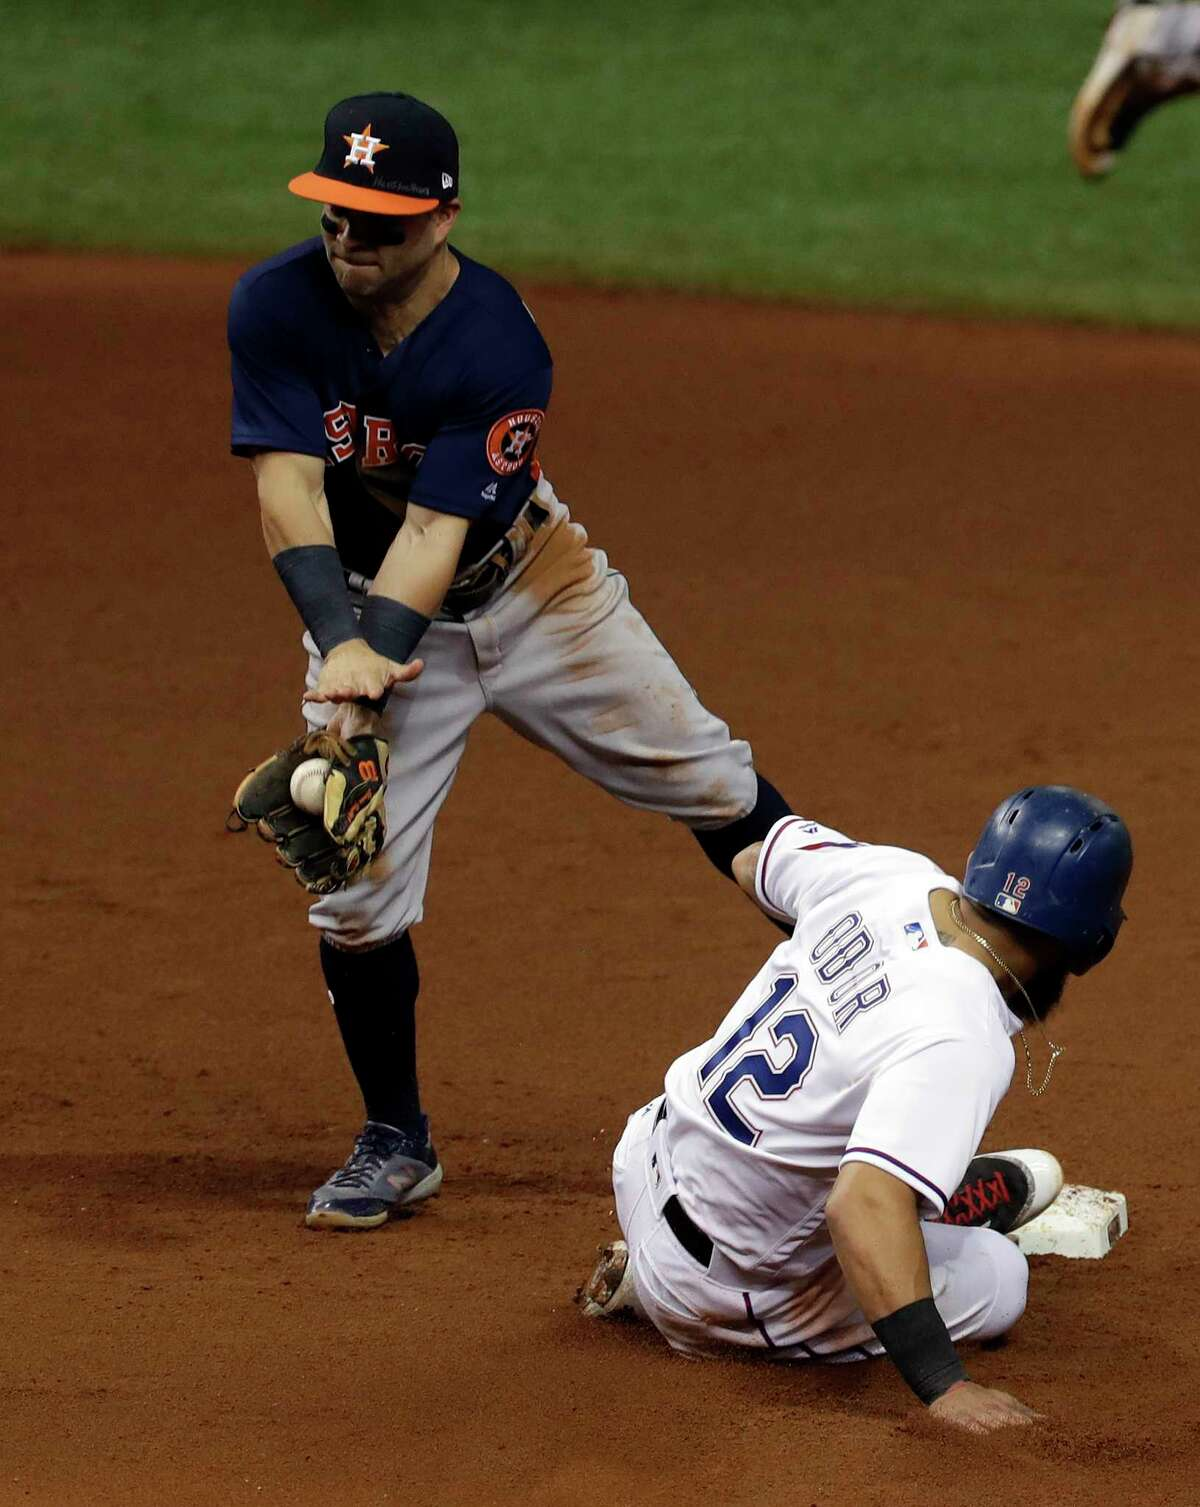 Texas Rangers' Rougned Odor steals second base in front of Houston Astros second baseman Jose Altuve during the fifth inning of a baseball game Tuesday, Aug. 29, 2017, in St. Petersburg, Fla. The Astros moved their three-game home series against the Rangers to St. Petersburg because of unsafe conditions from Hurricane Harvey. (AP Photo/Chris O'Meara)